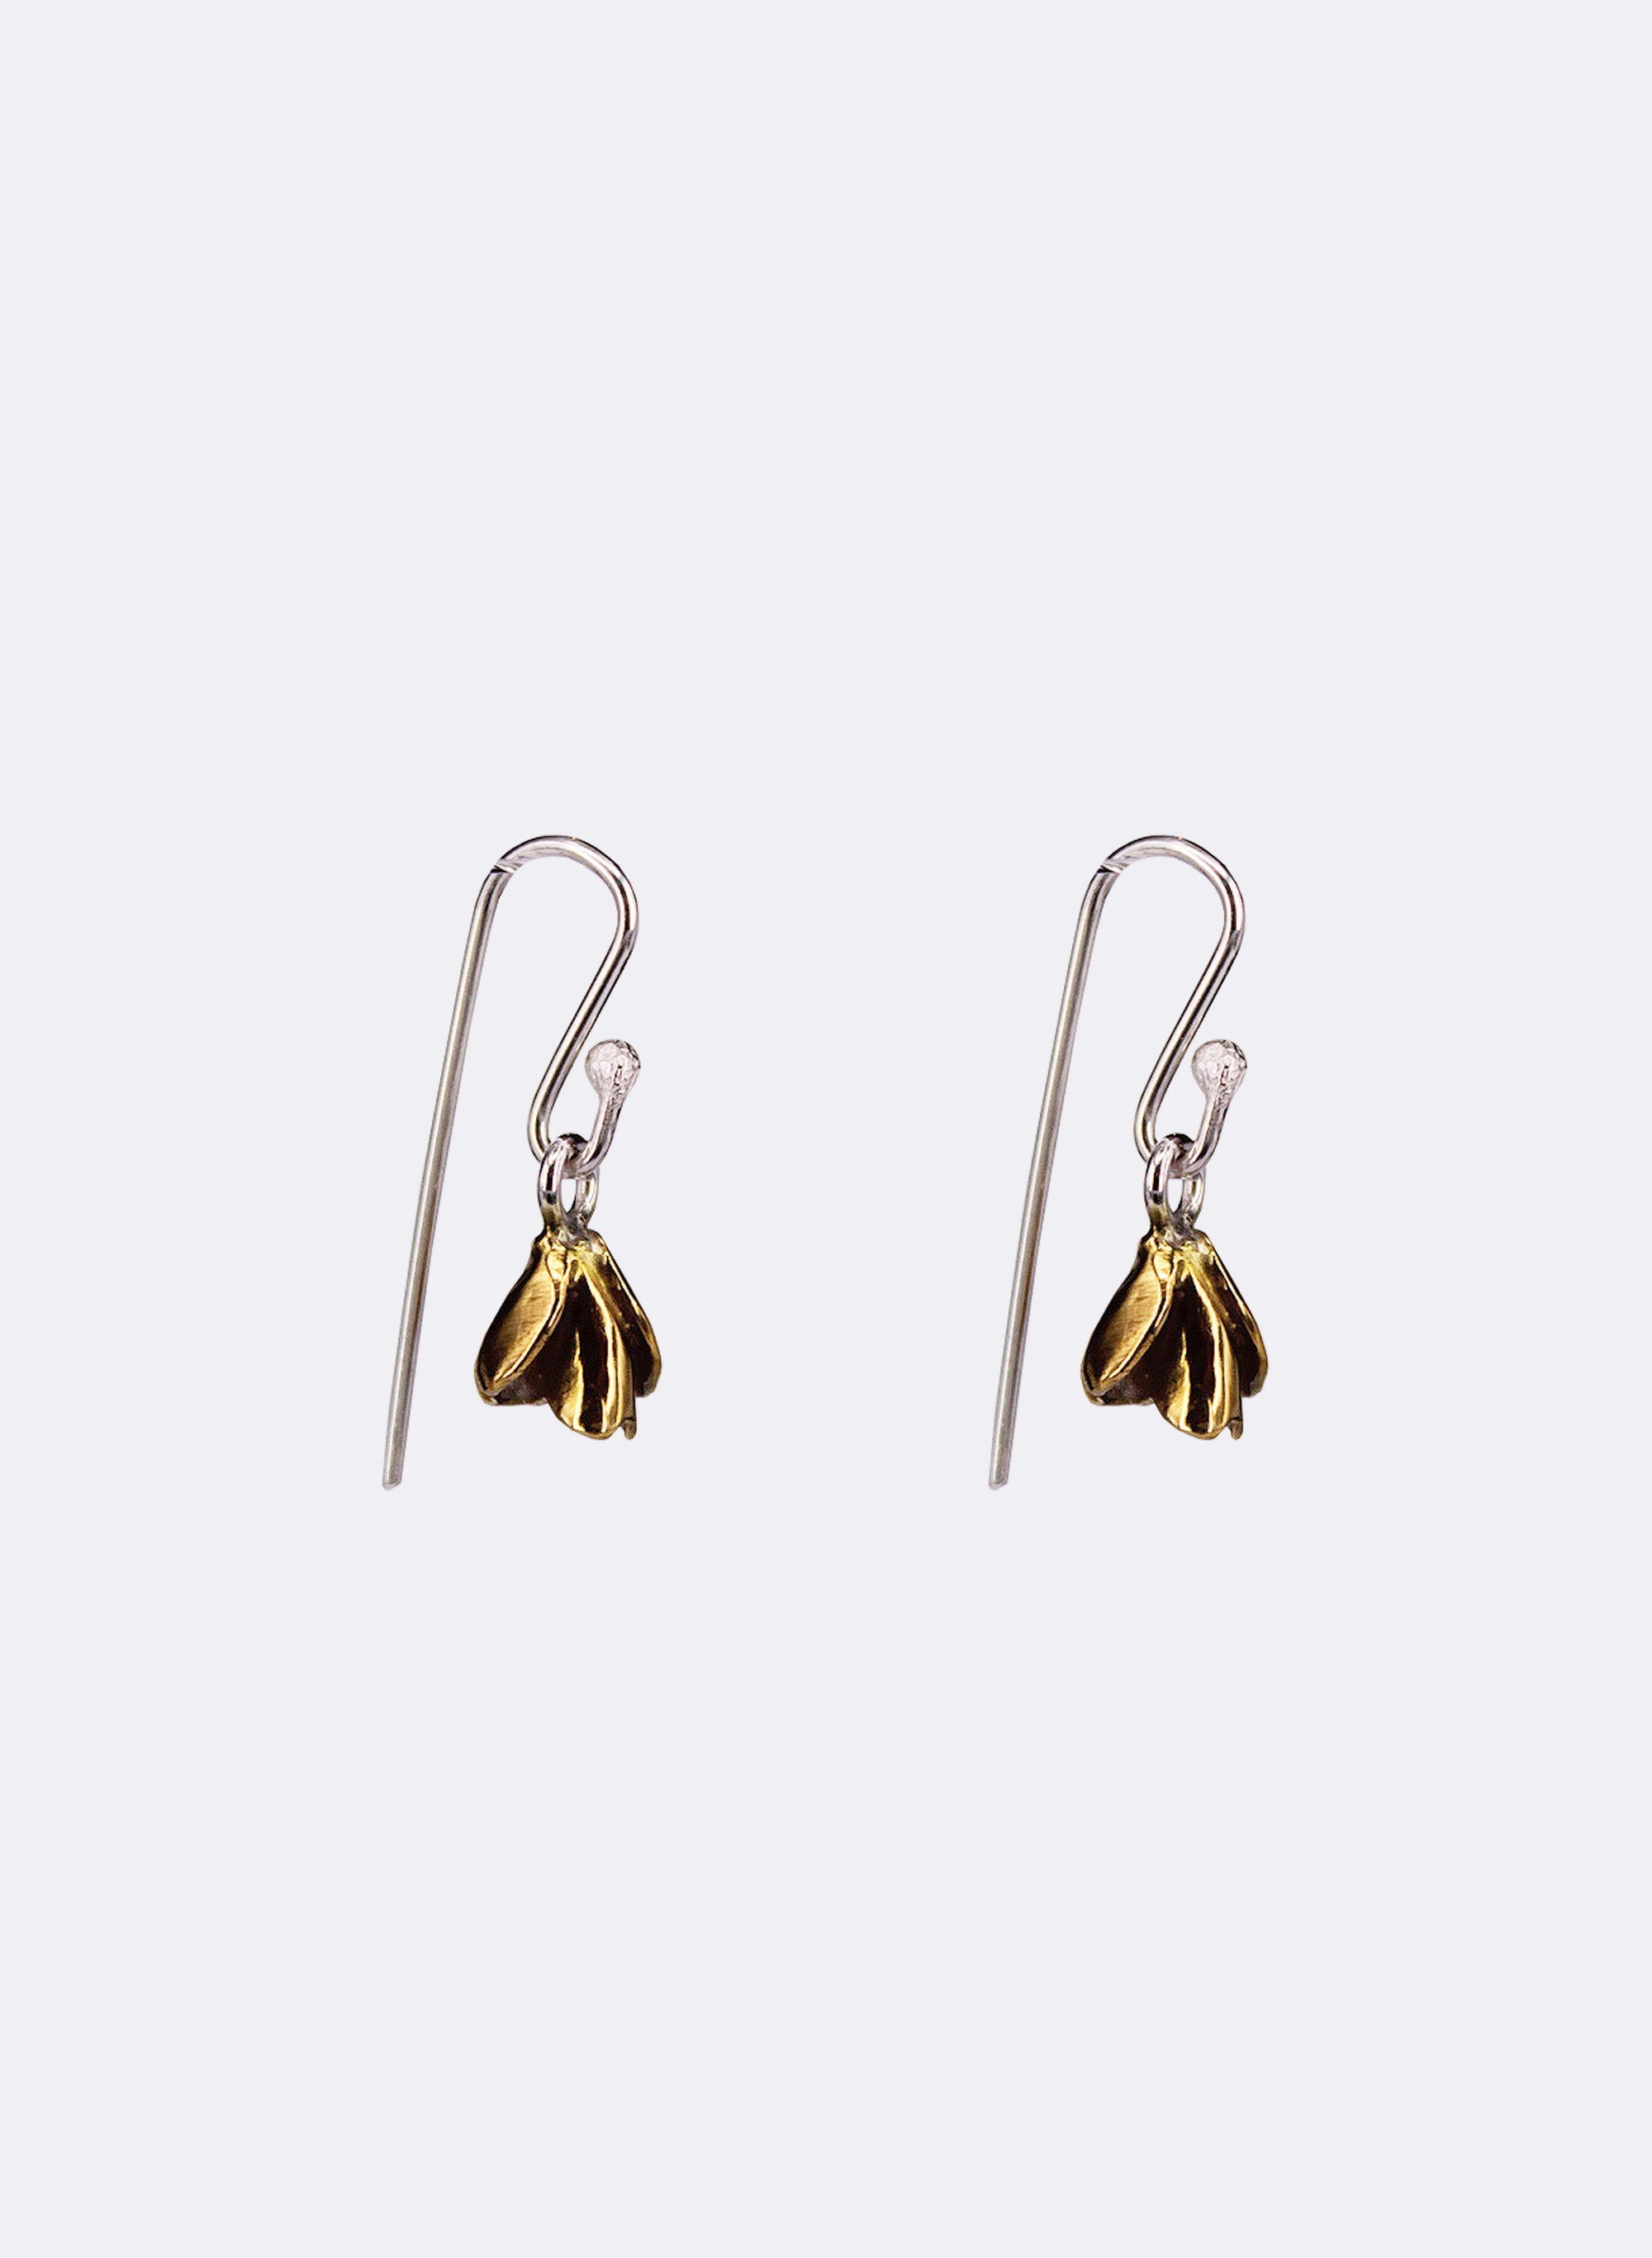 Flower Bud Earrings - Yellow Gold